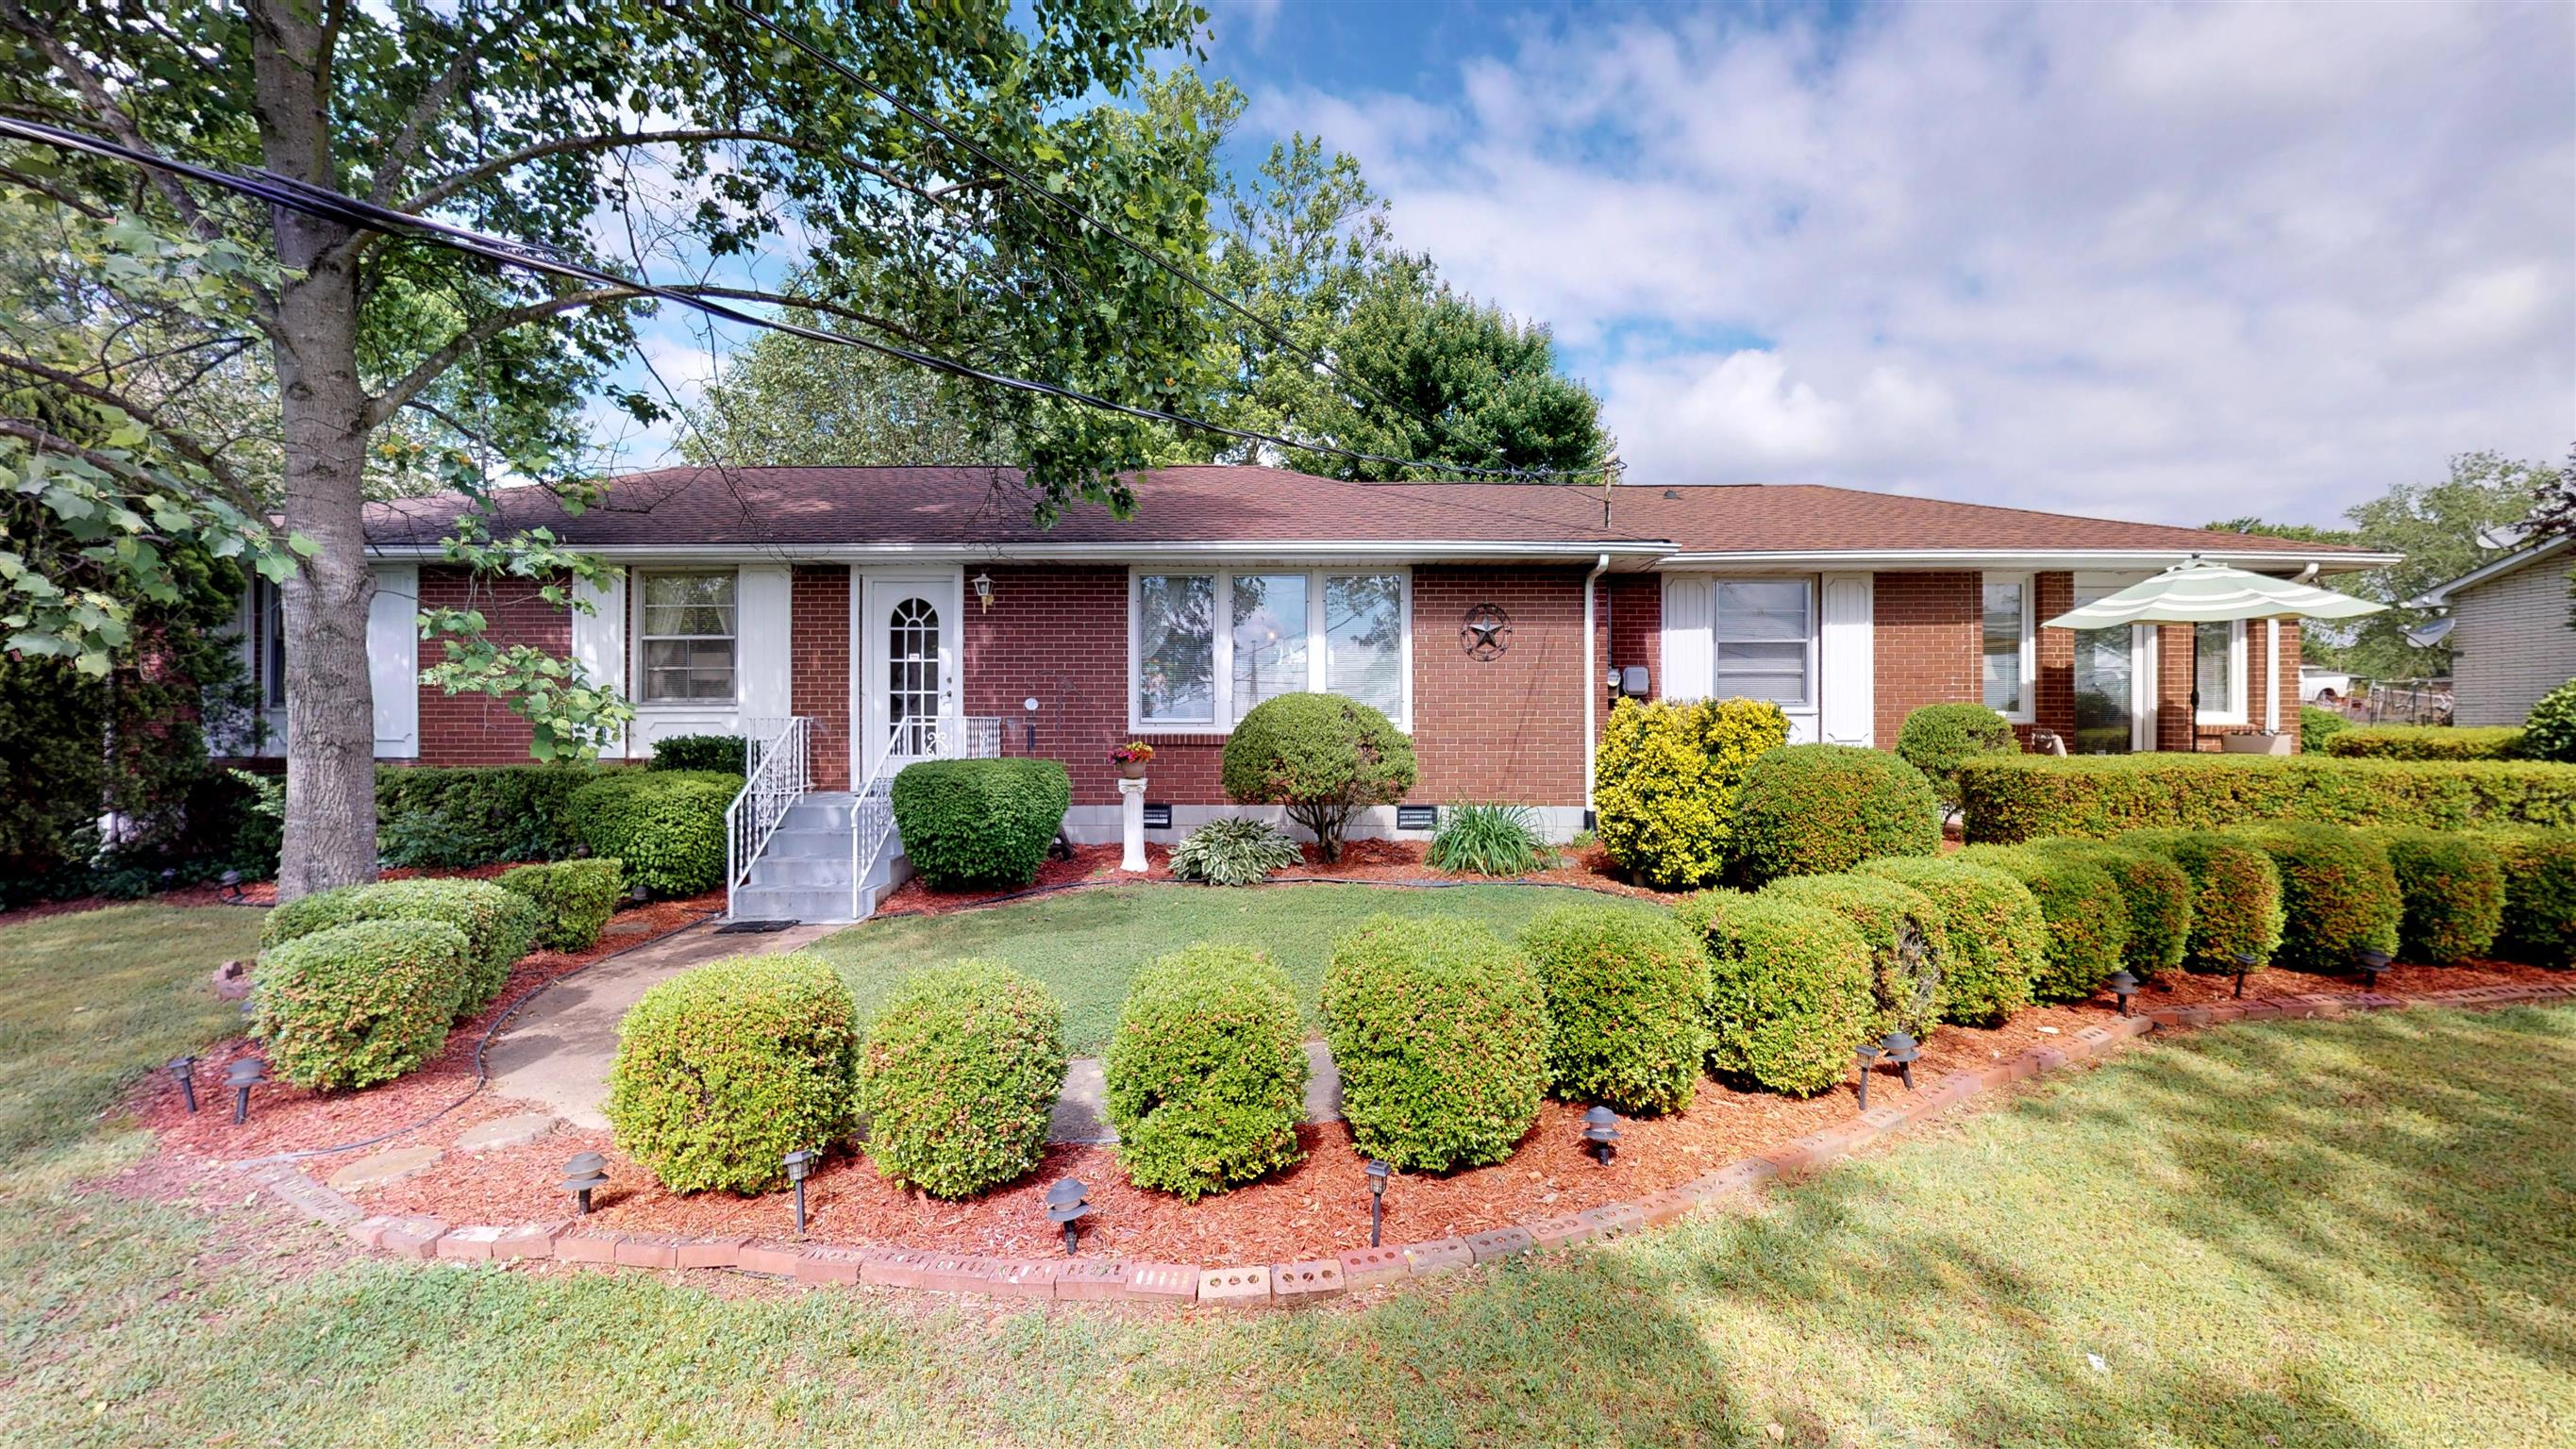 370 Sanders Ferry Rd, Hendersonville in Sumner County County, TN 37075 Home for Sale